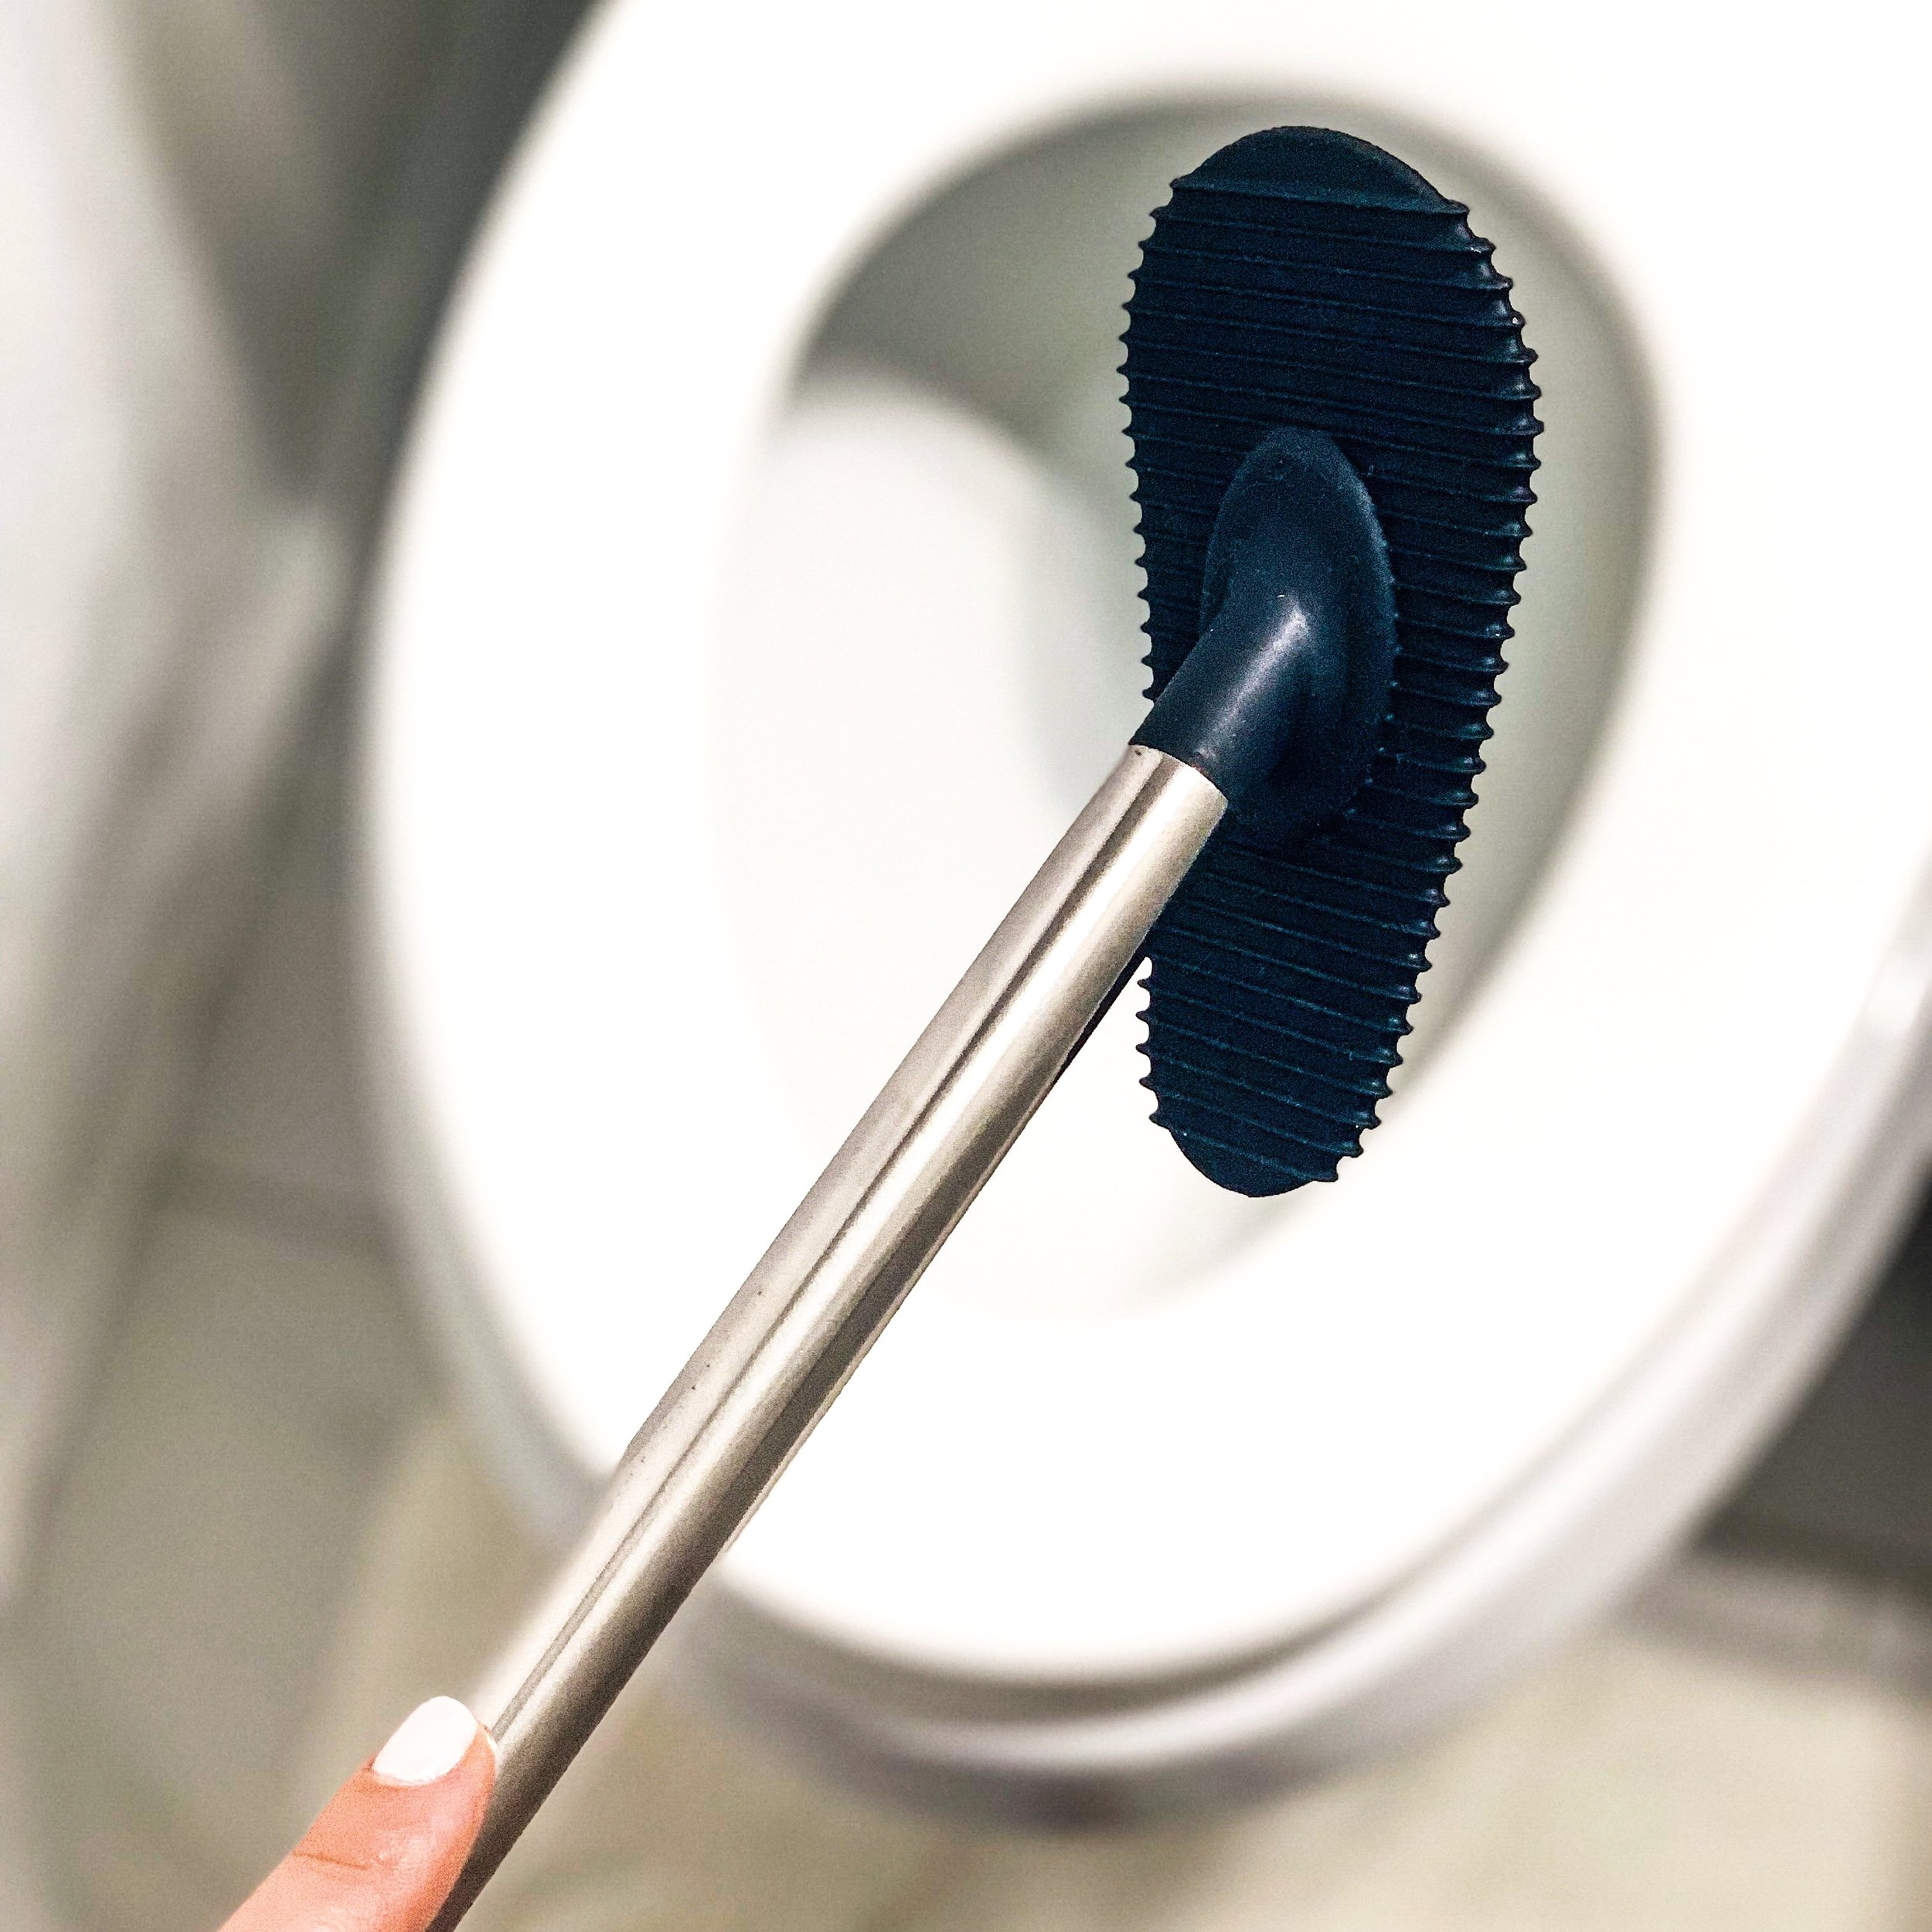 A Better Clean - The better living hygienic toilet squequee saves you time and effort with 30 micro squeegee blades & a non stick flexible silicone pad. SHOP HERE